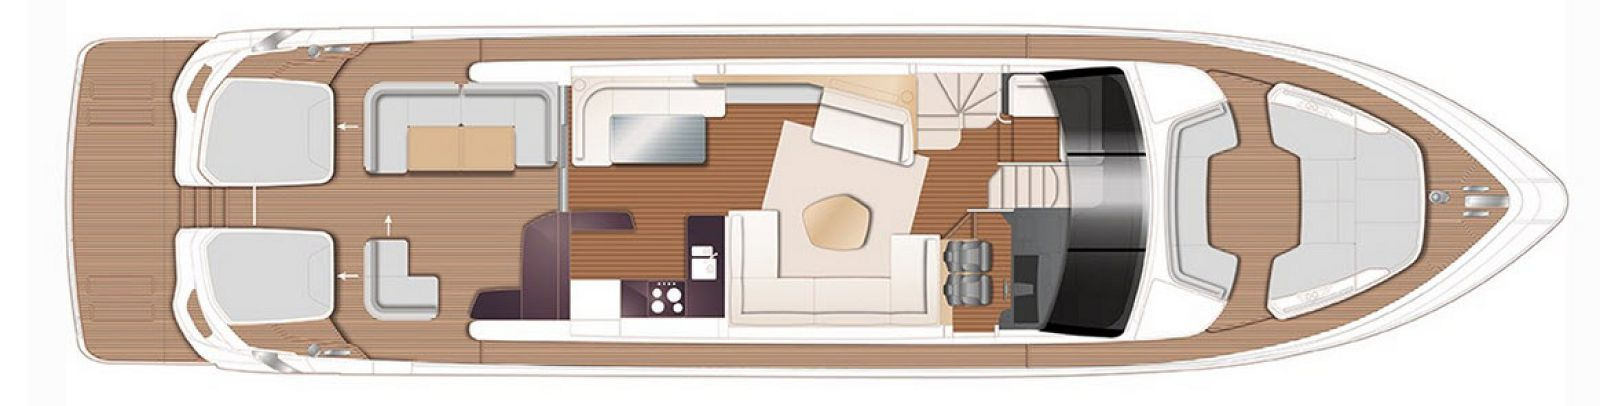 Princess V78 Main Deck Layout